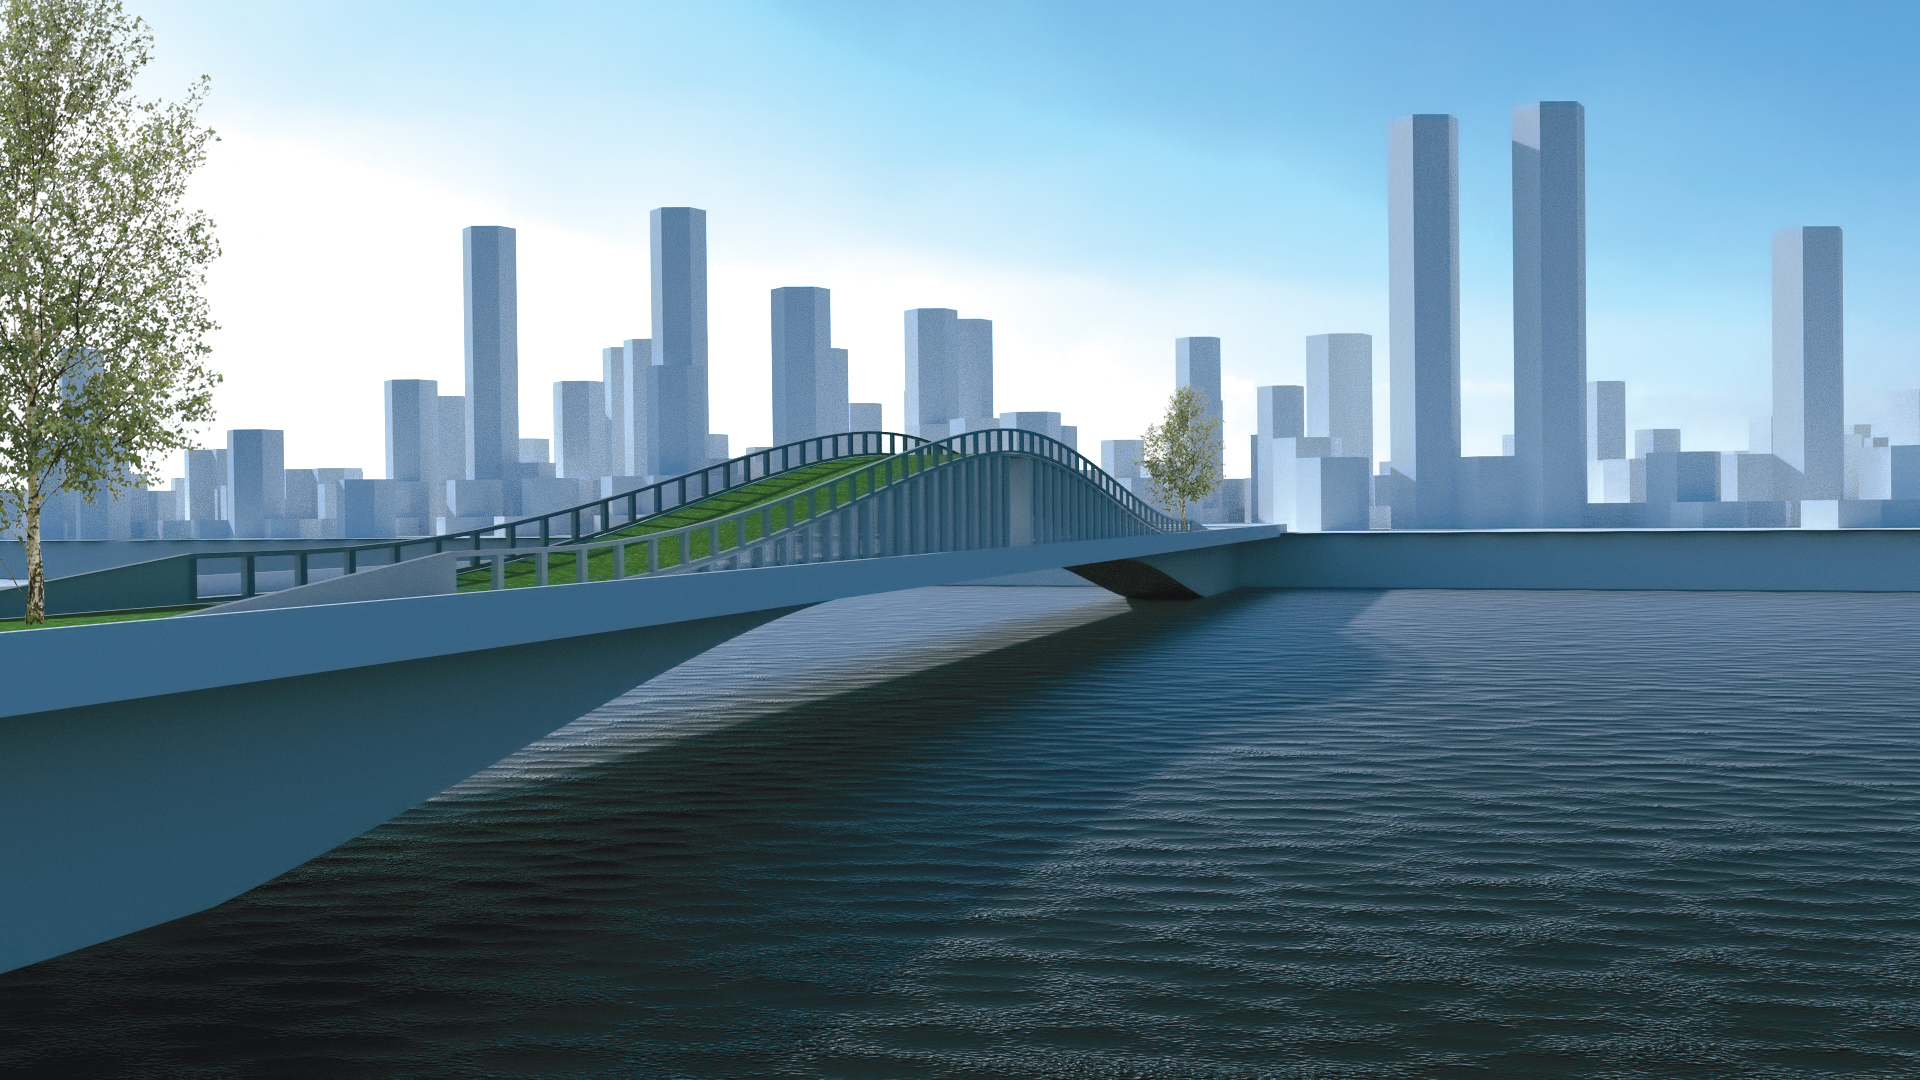 Conceptual Bridge